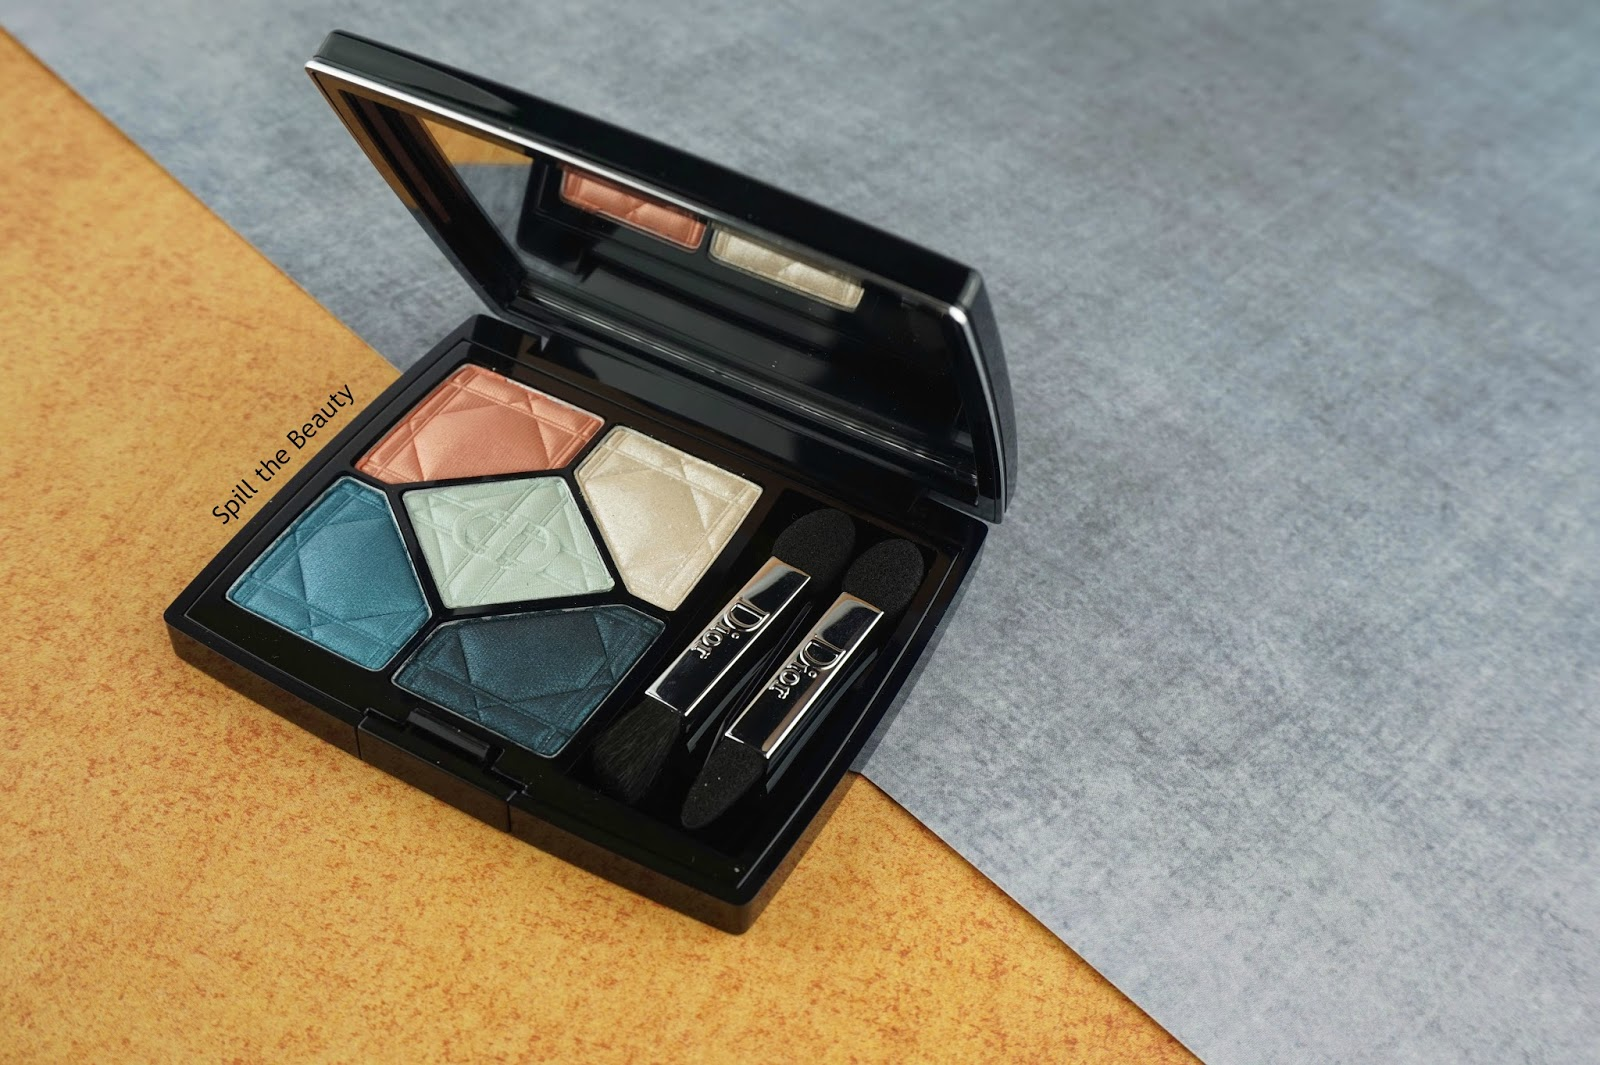 Dior 5 Couleurs Eyeshadow Palette 'Electrify' – Review, Swatches, and Look